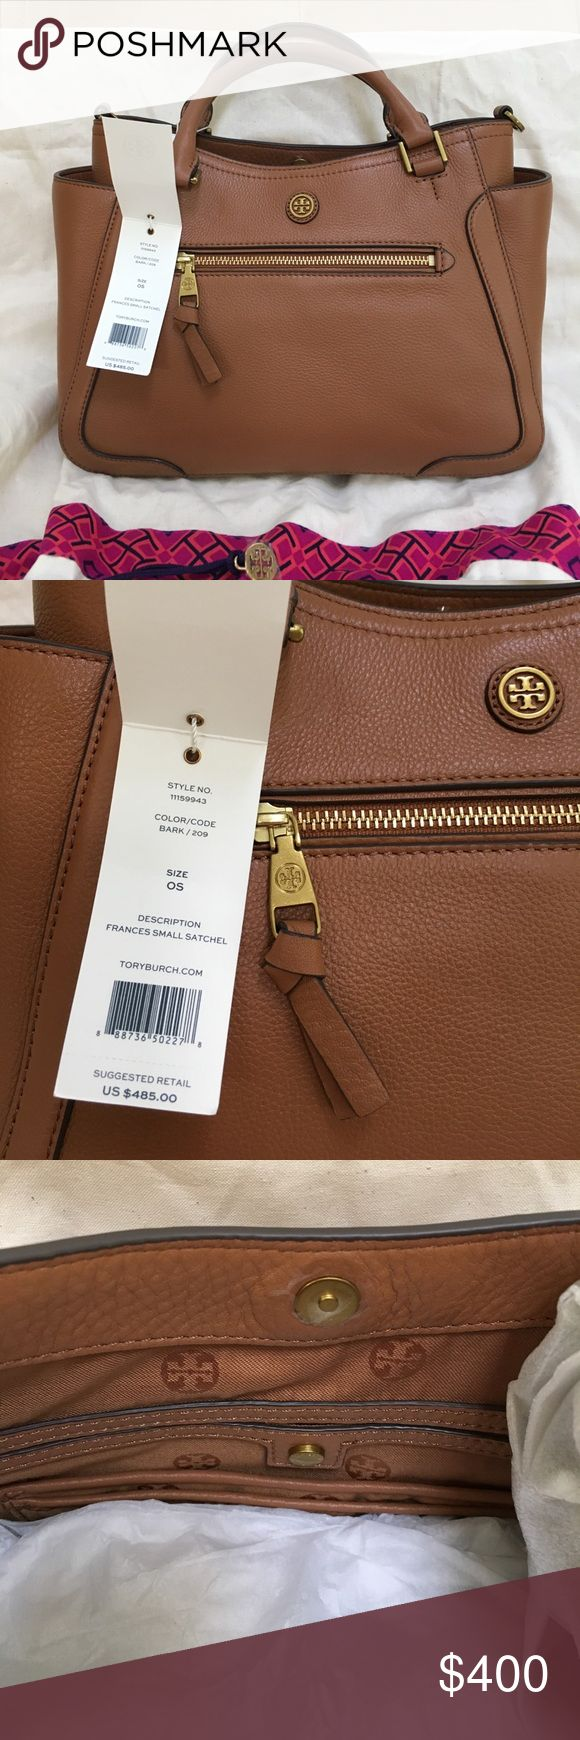 Tory Burch Frances small satchel Purchased in 2016 but never used. Measures 12x5x9. Removable cross body strap still wrapped inside bag. Has rustic gold hardware, though no protective feet. Lots of interior and exterior pockets. Tory Burch Bags Satchels